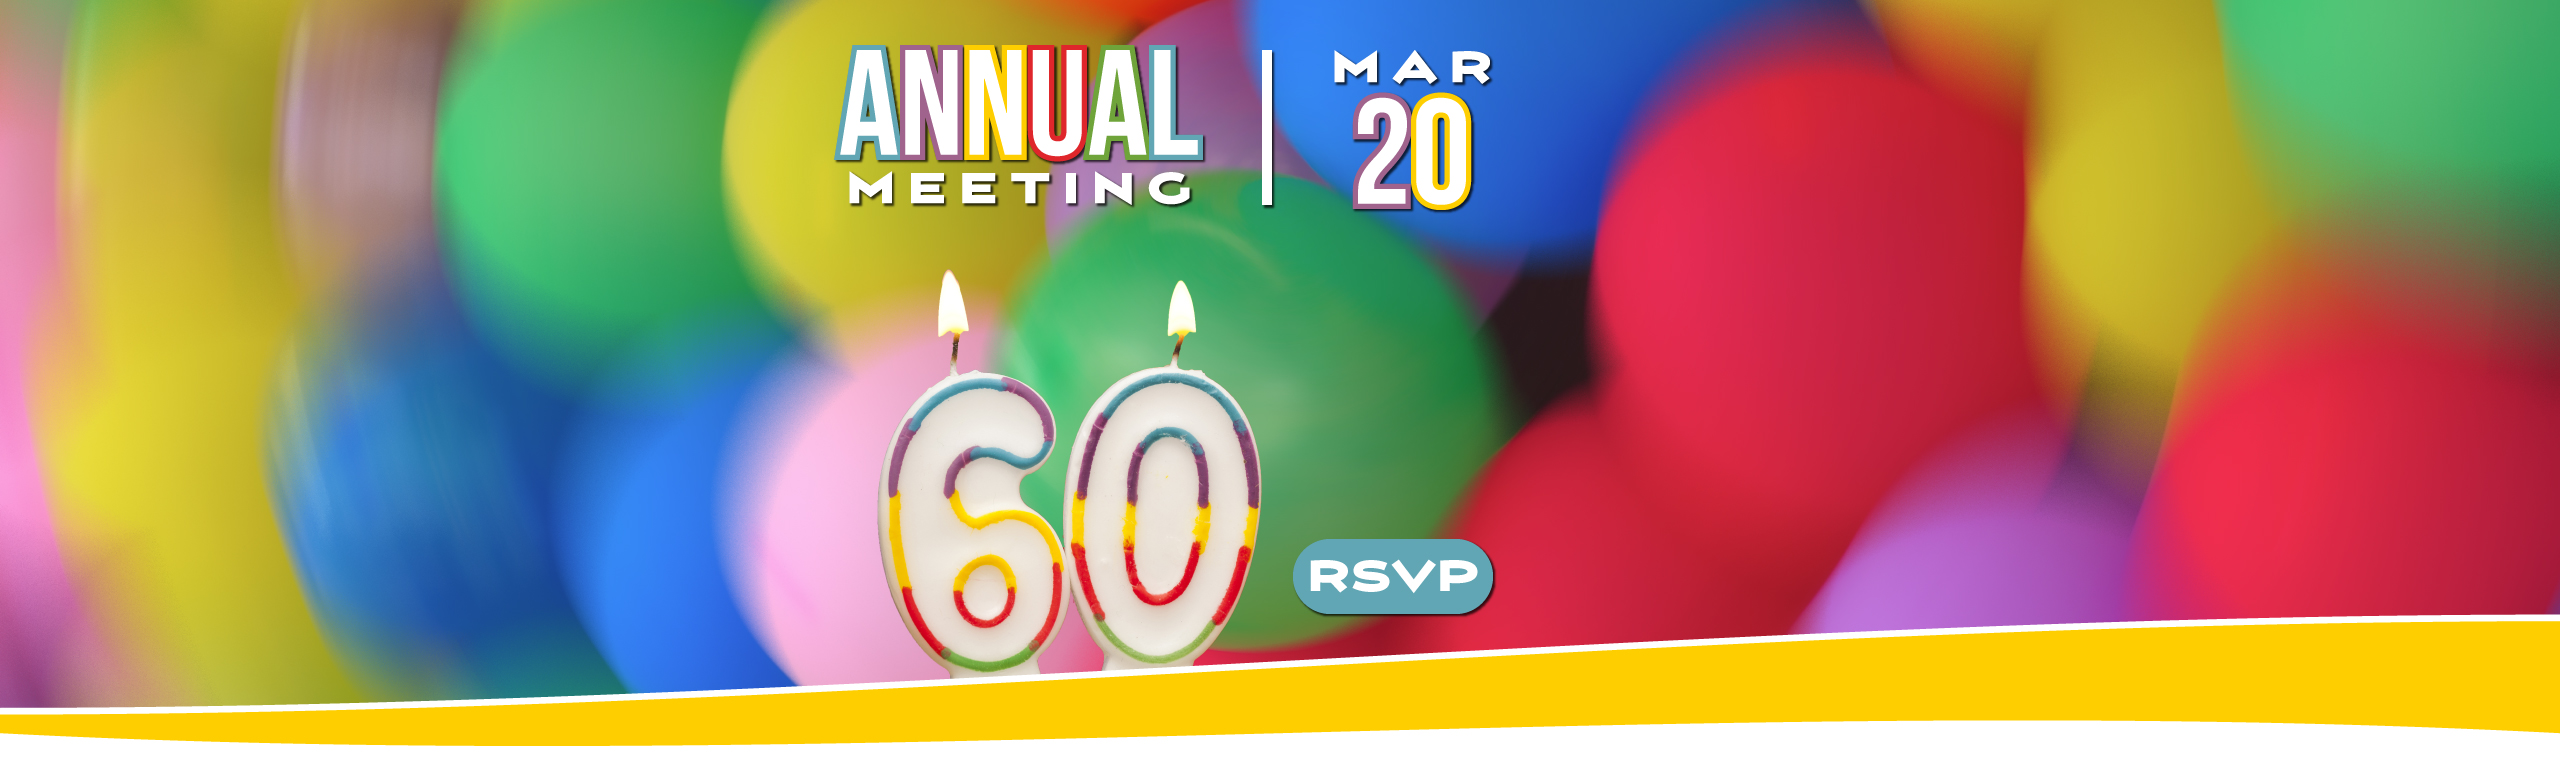 Annual Meeting March 20 RSVP